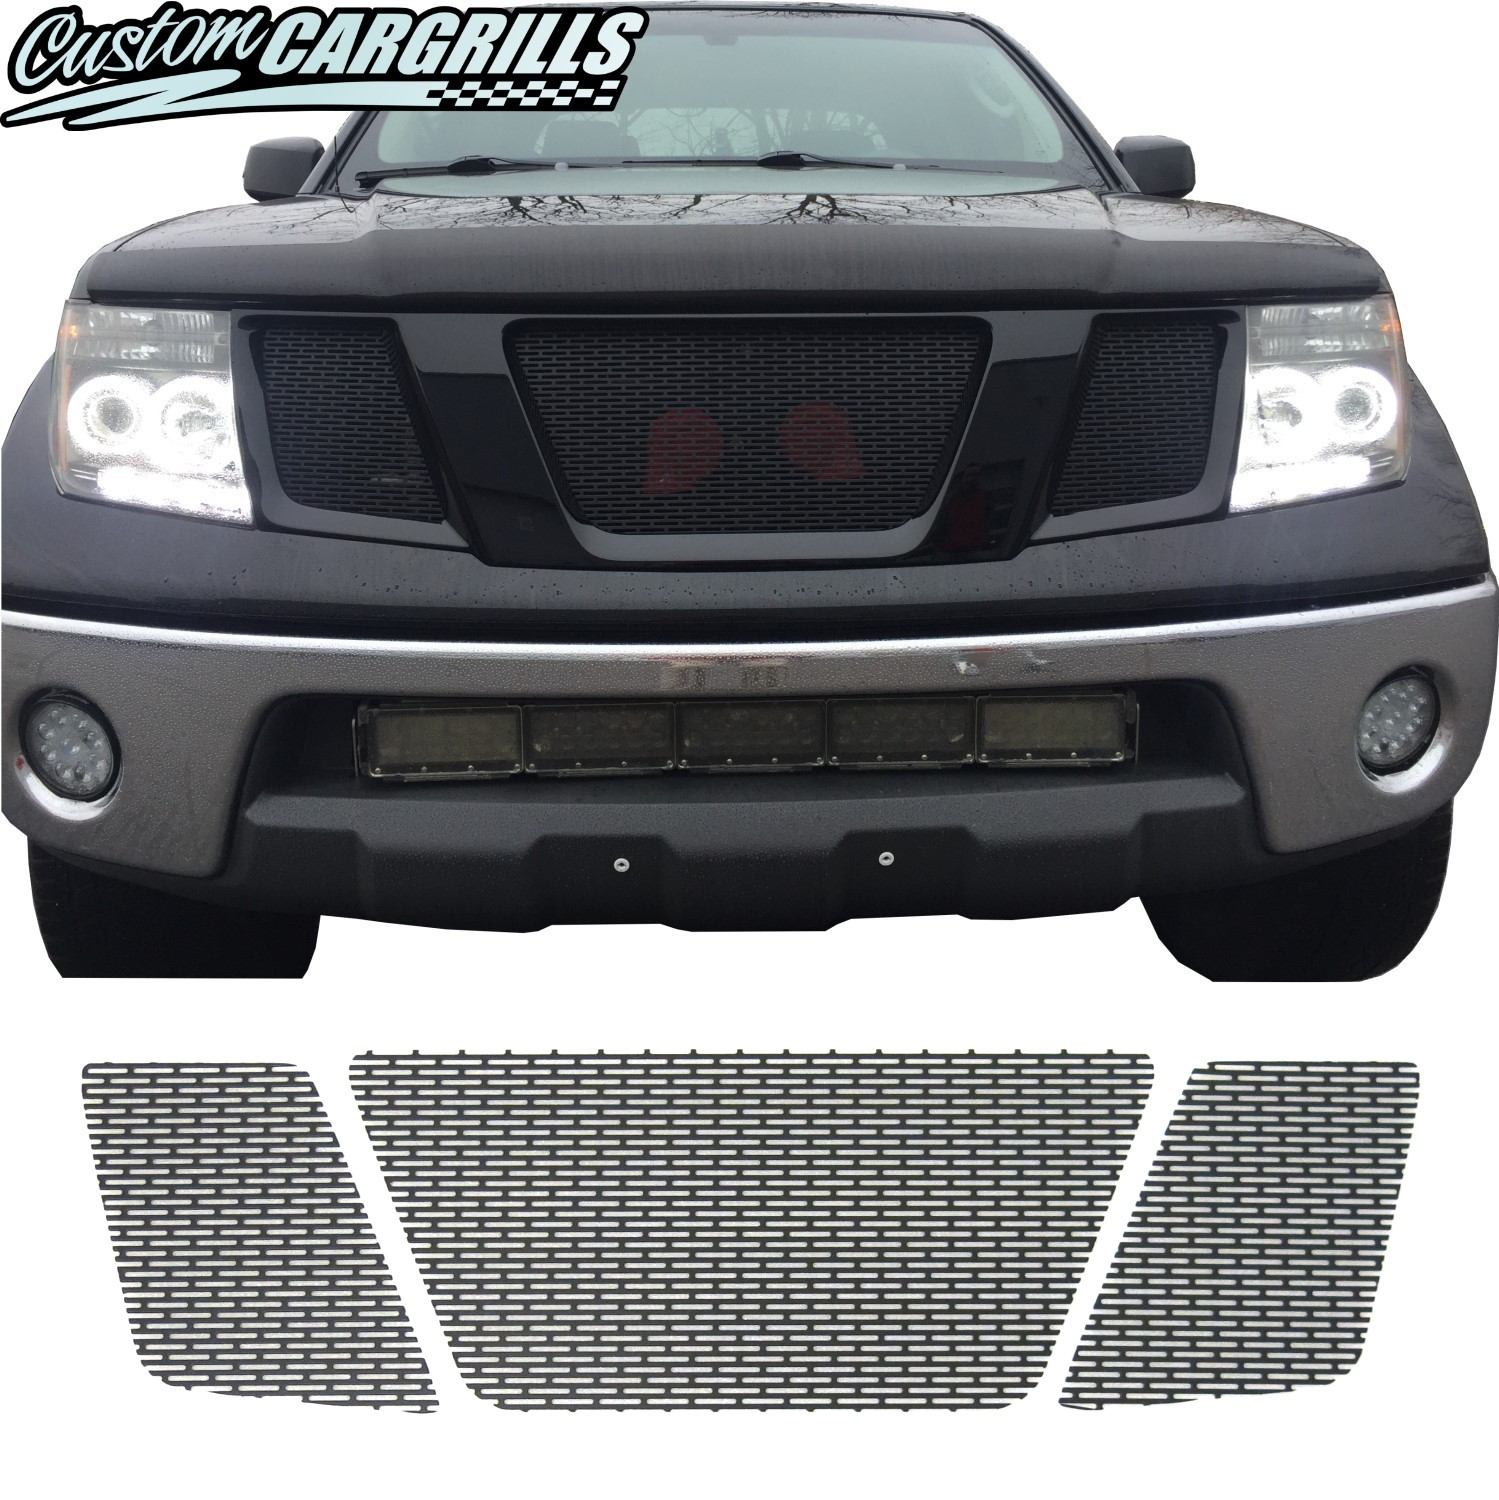 hight resolution of 2005 2008 nissan frontier mesh grill set tap to expand